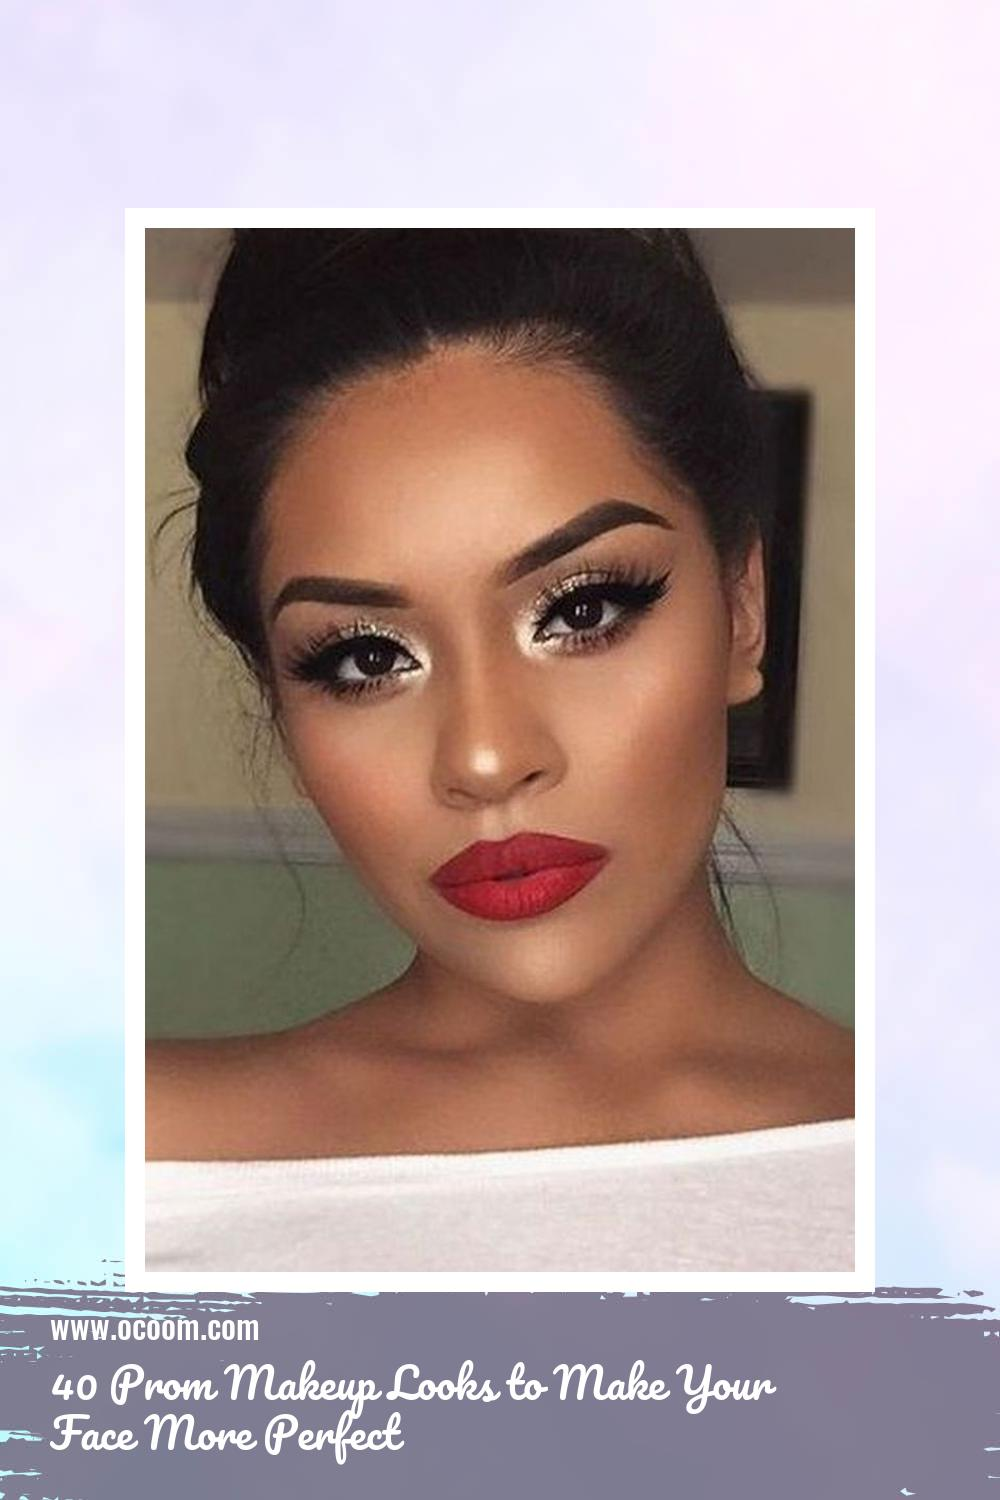 40 Prom Makeup Looks to Make Your Face More Perfect 13